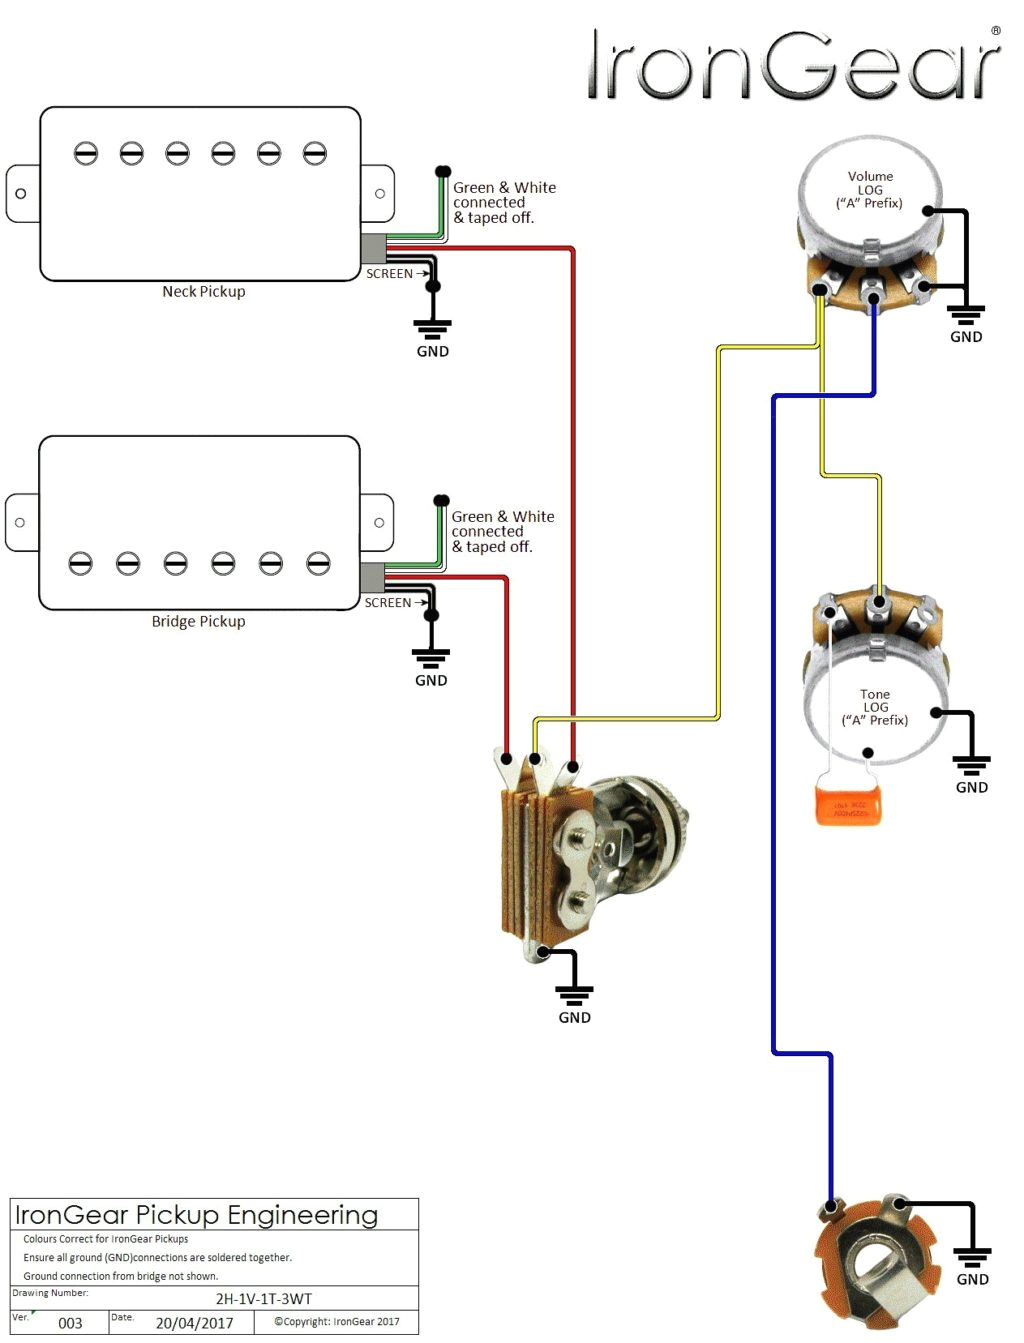 dimarzio wiring diagrams for free download rg prestige schema free download prestige wiring diagram